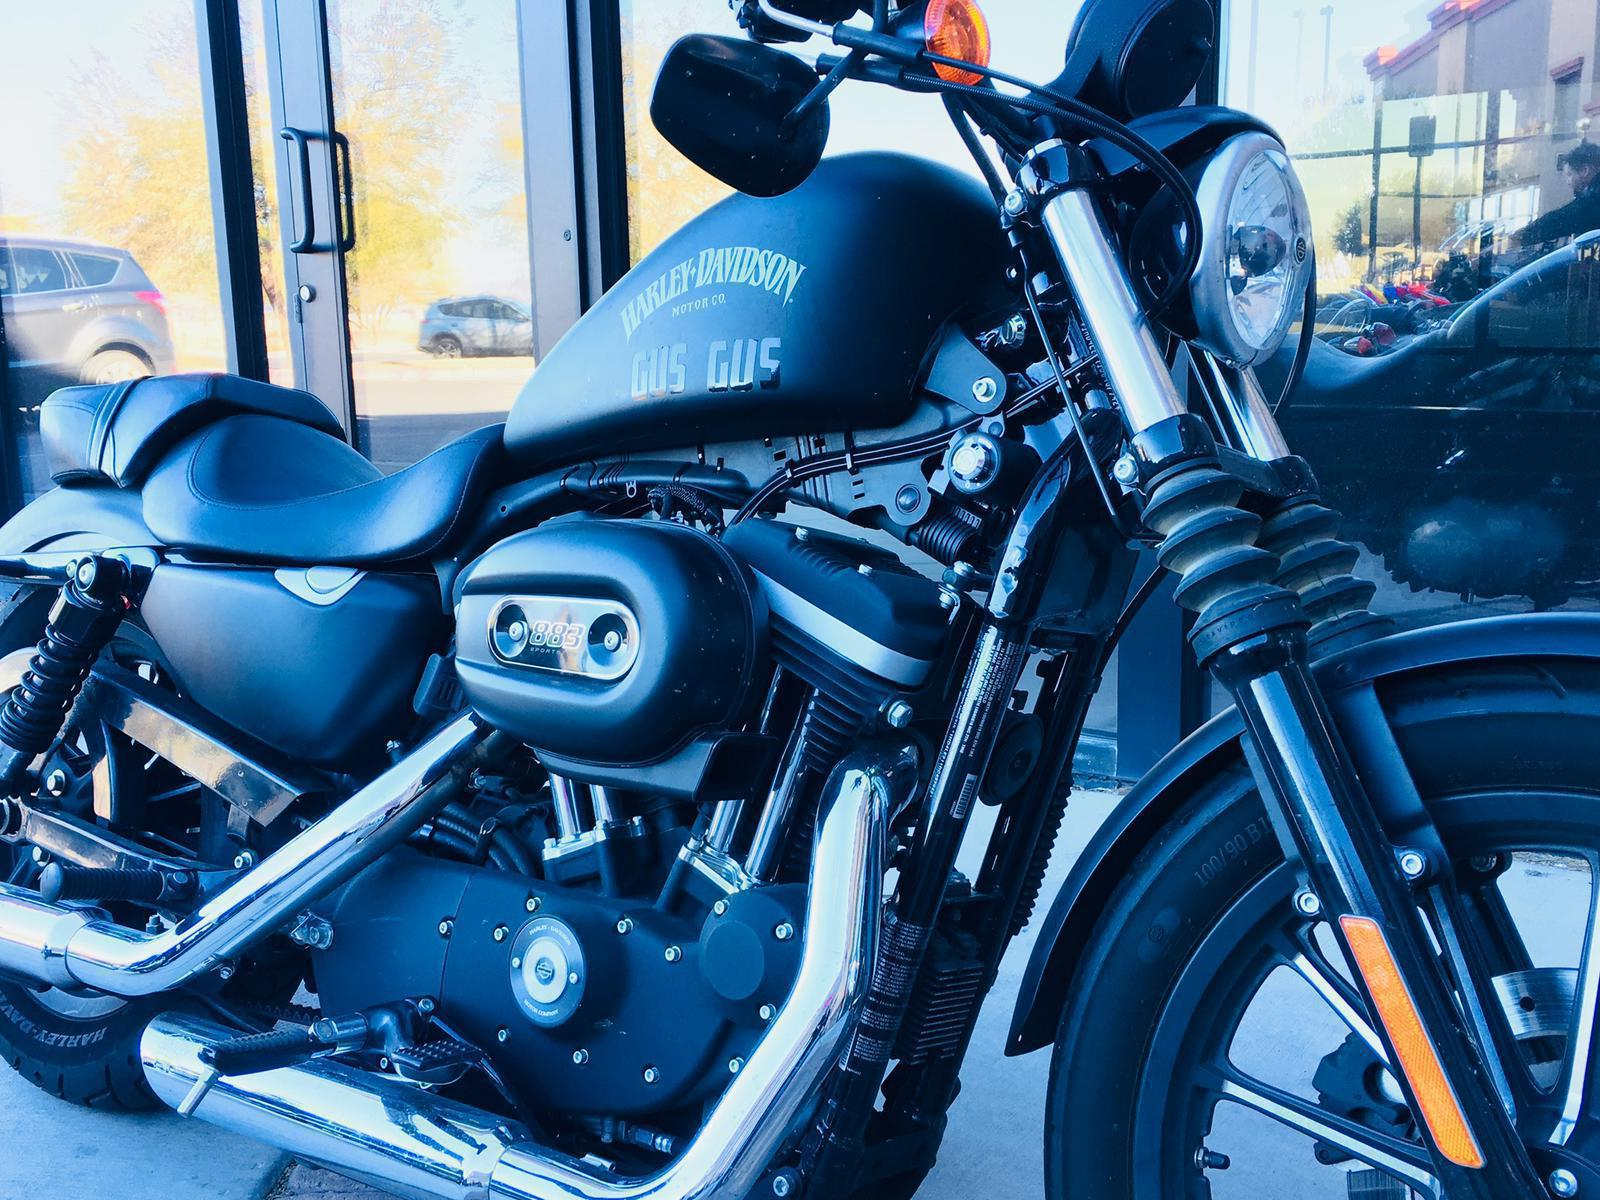 Inventory From Buell And Harley Davidson Freedom Euro Cycle 2000 Xl 883 Wiring Harness The Sportster Motorcycle 2013